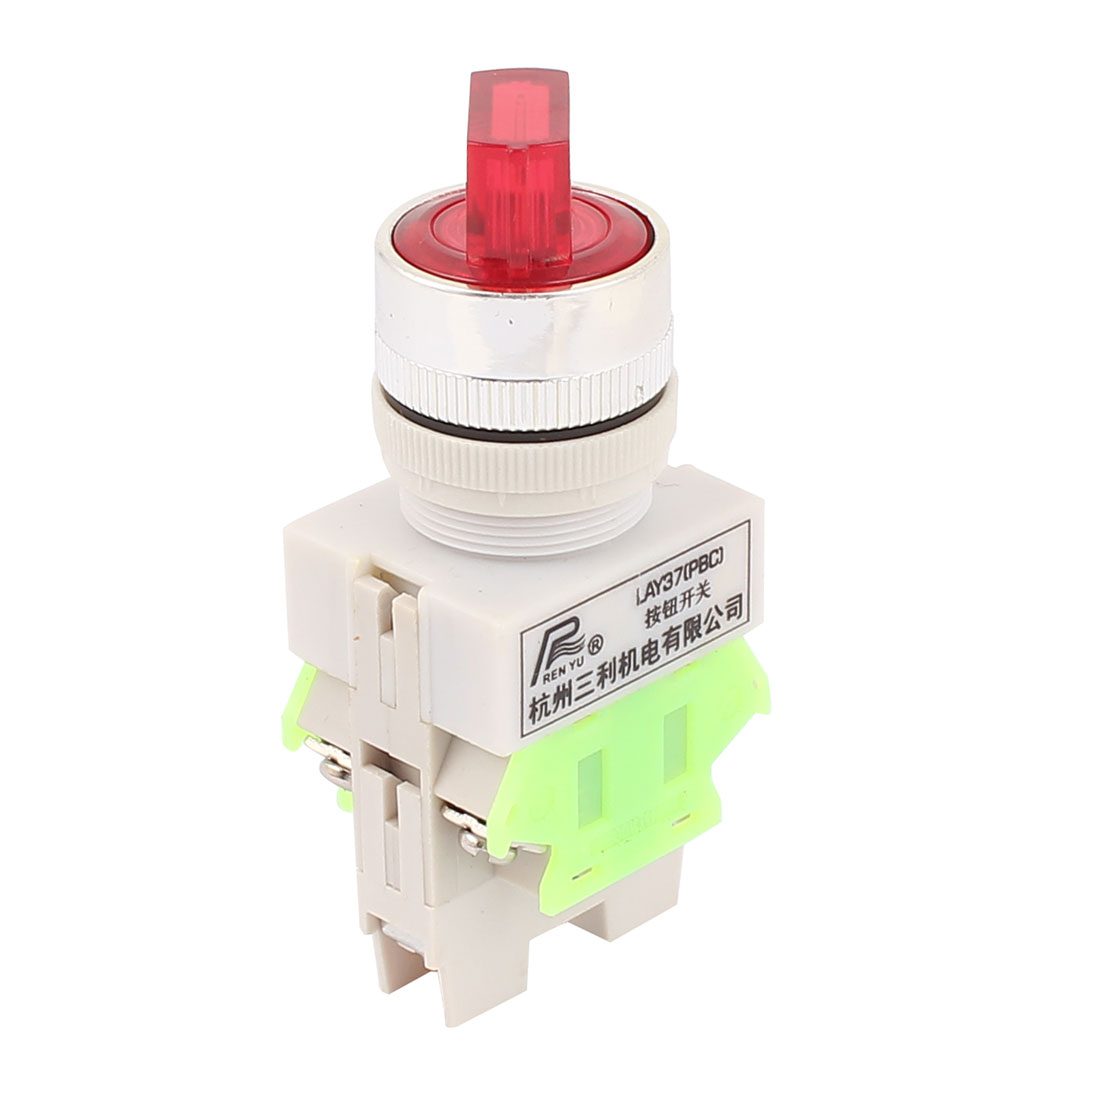 AC 660V 10A DPST NC/NO 3 Position Red Light Selector Self Locking Rotary Switch